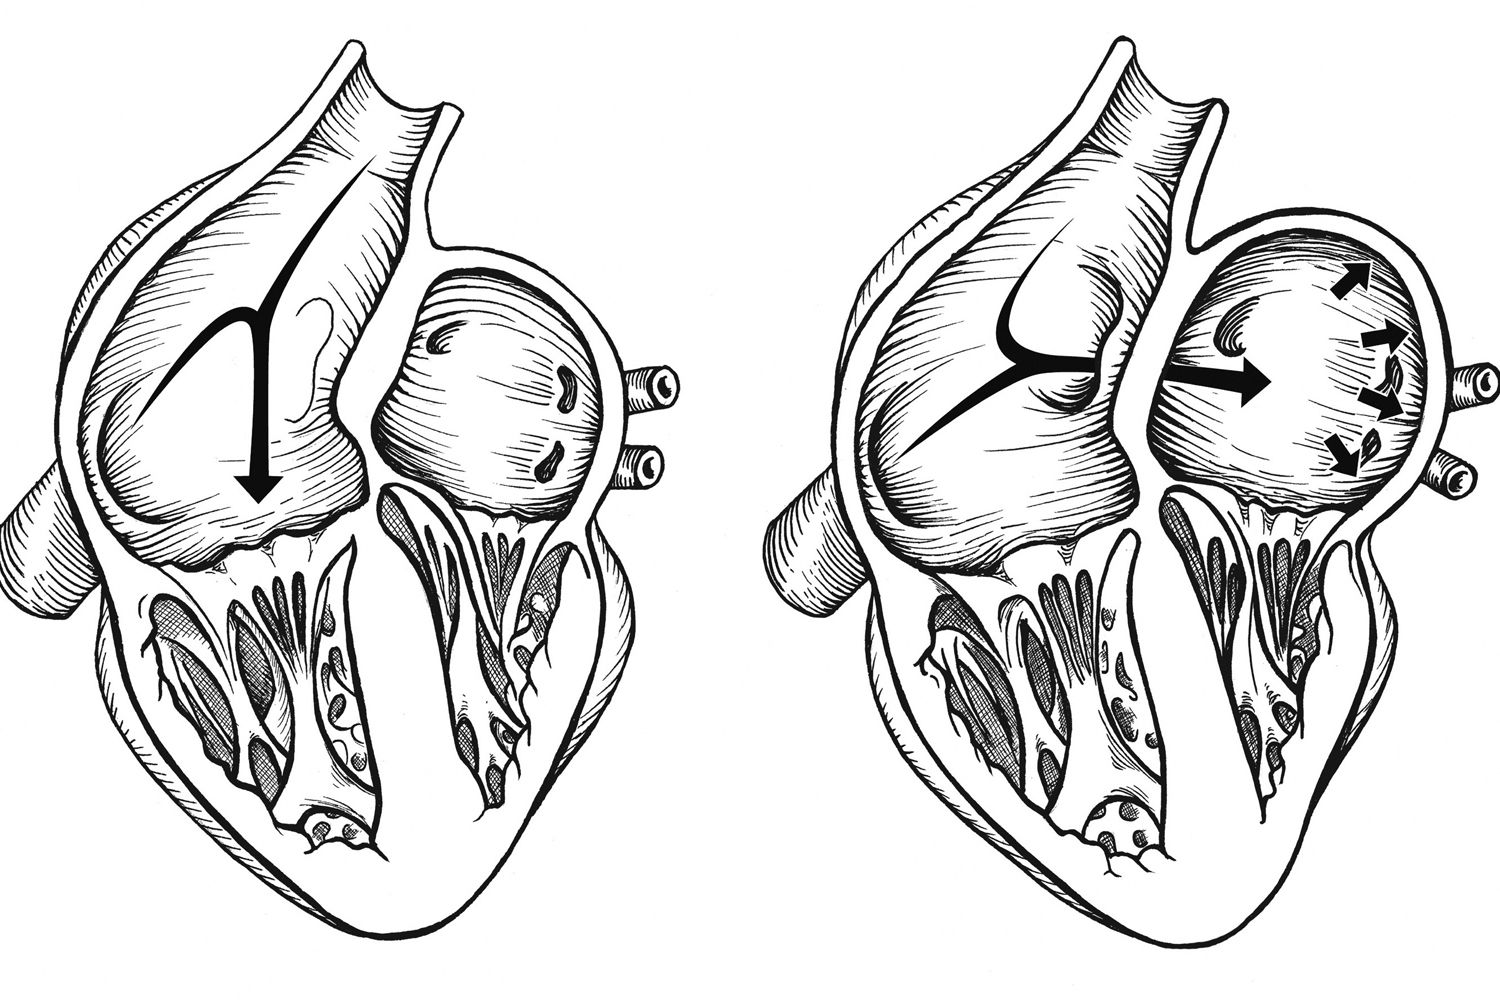 Between Migraines And Patent Foramen Ovale